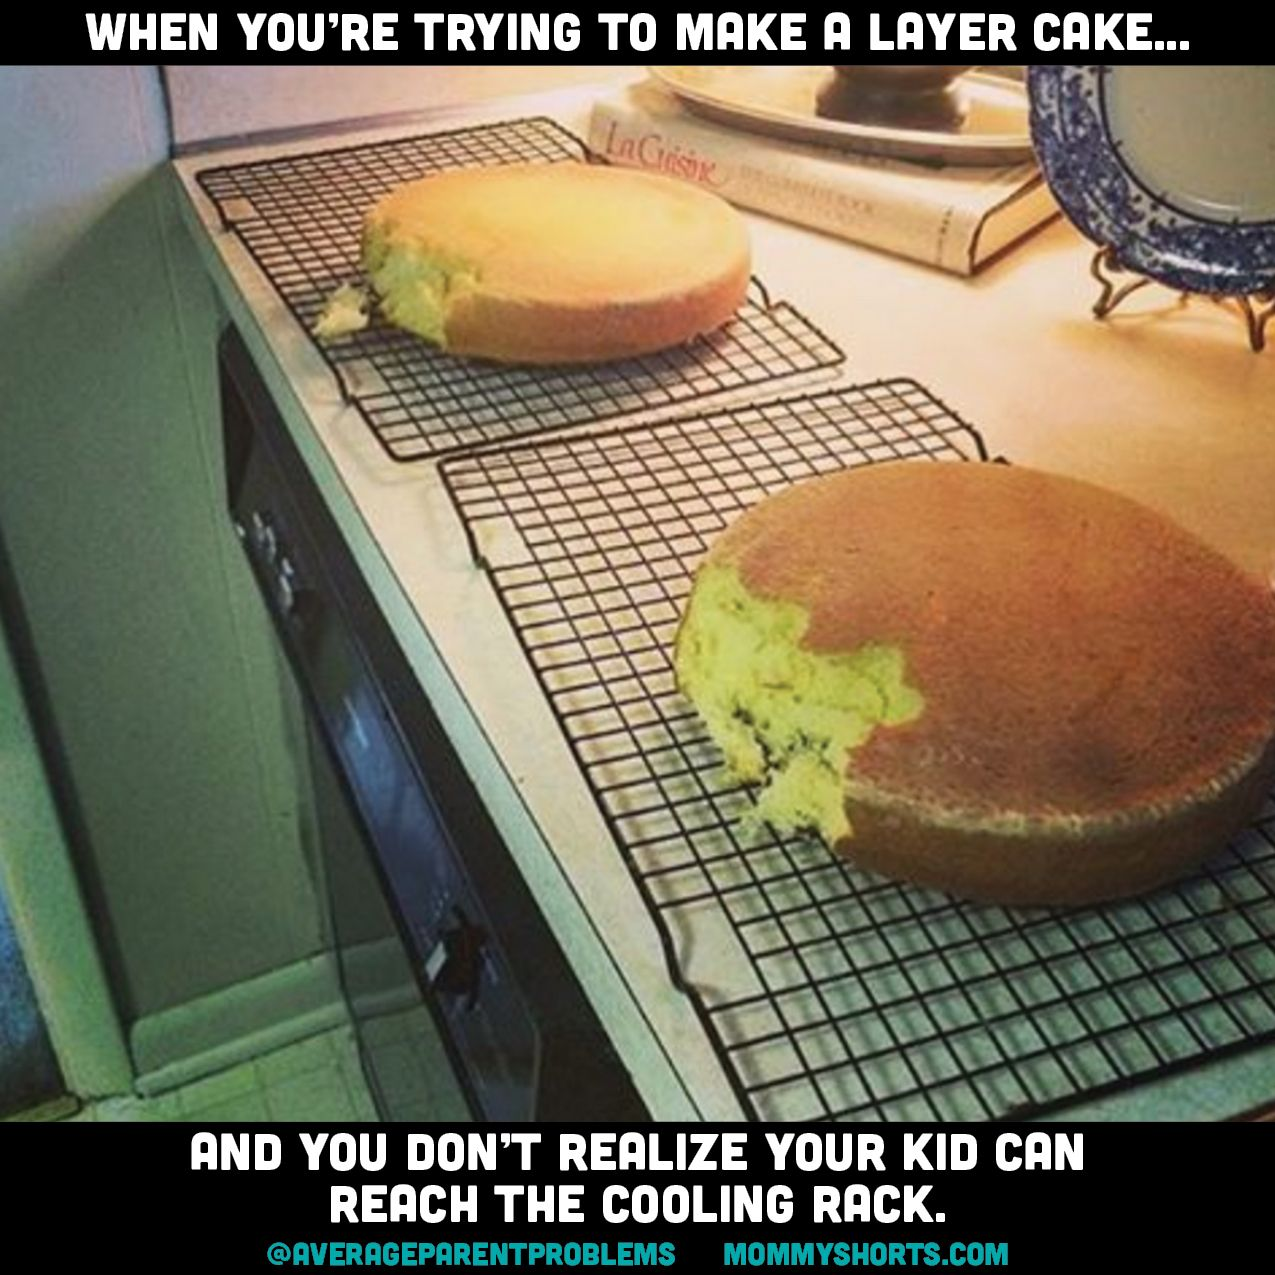 When you're trying to make a layer cake